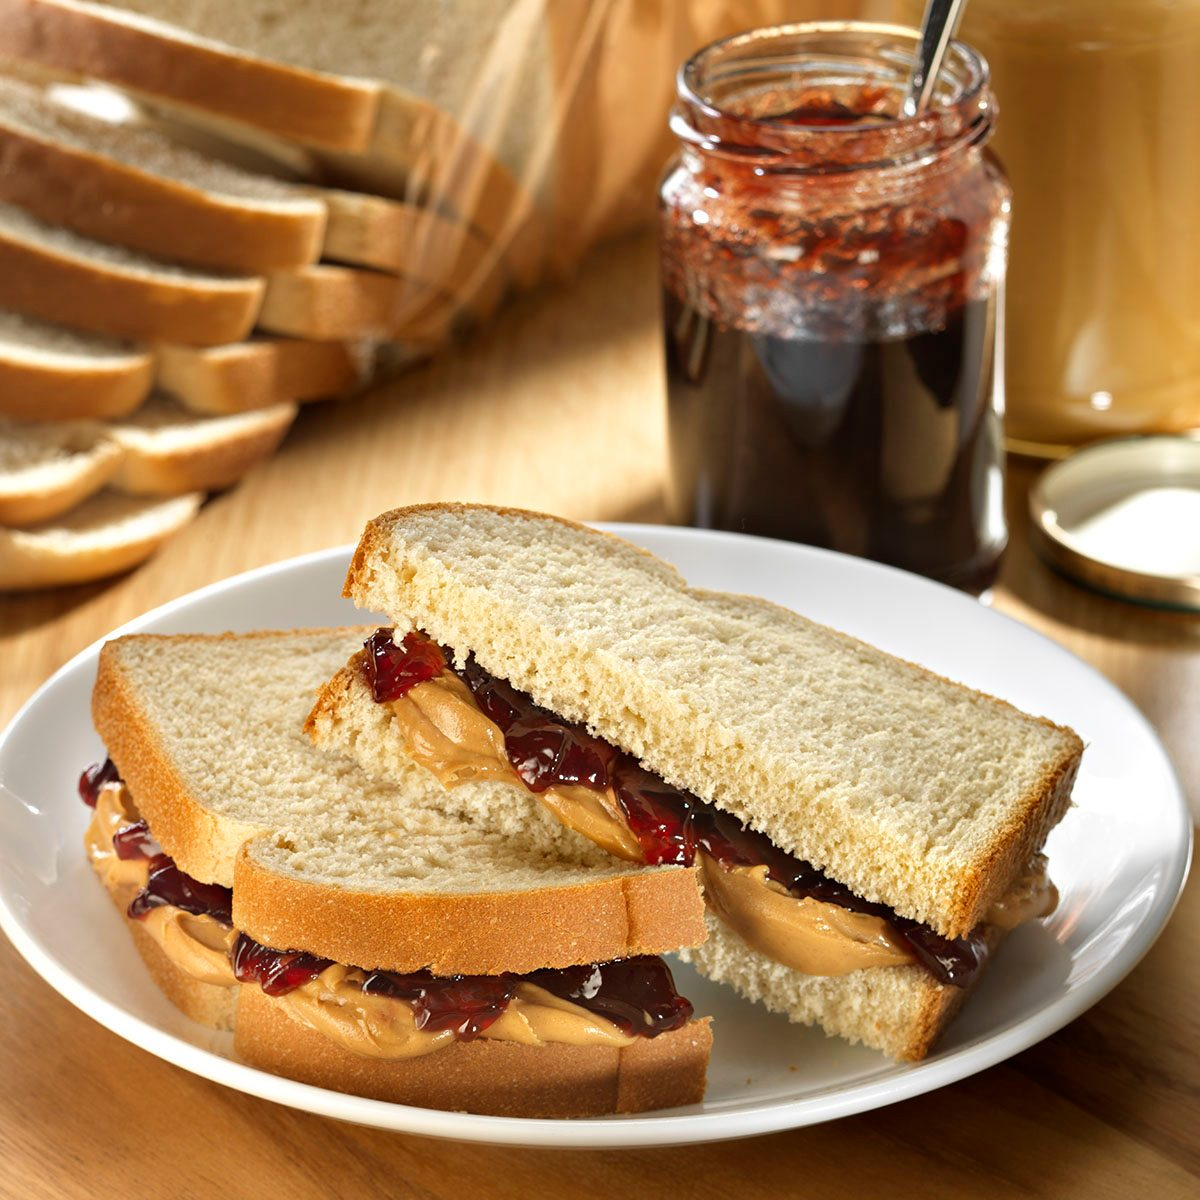 Peanut Butter and Jam sandwich on whole grain white bread with peanut butter jar and jam jar in background with loaf of bread and bottle of milk.